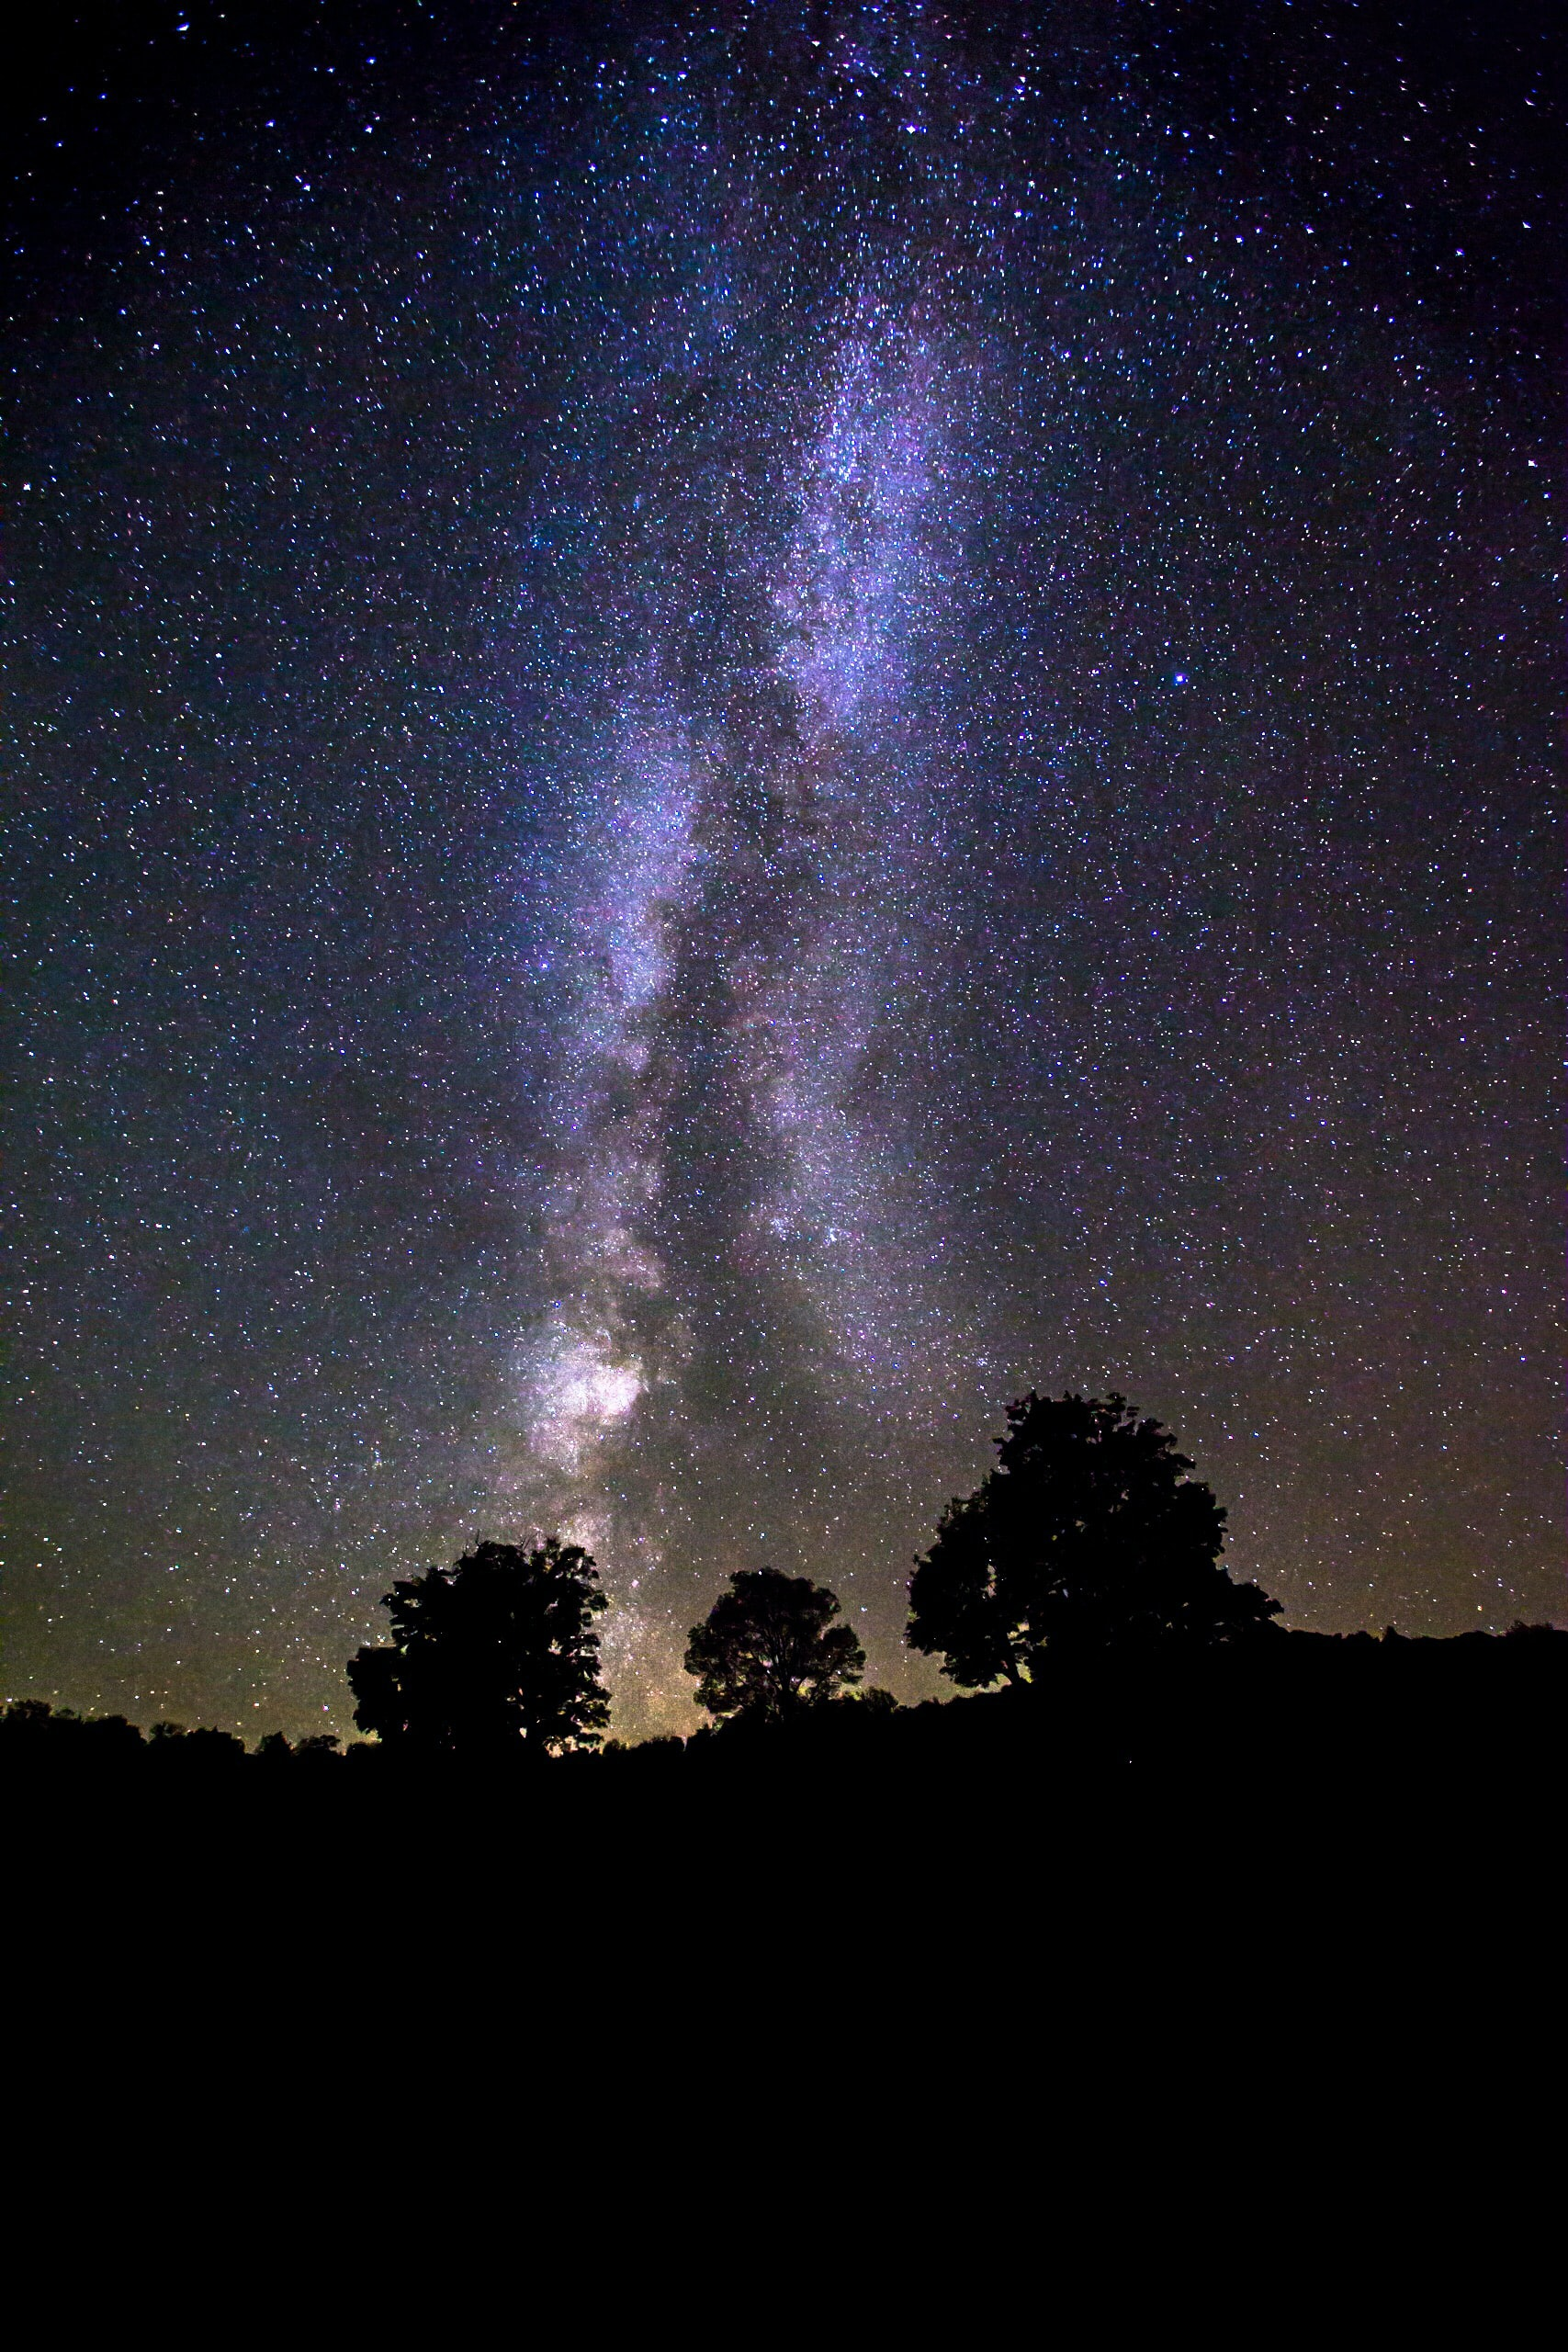 silhouette of trees under milky way galaxy